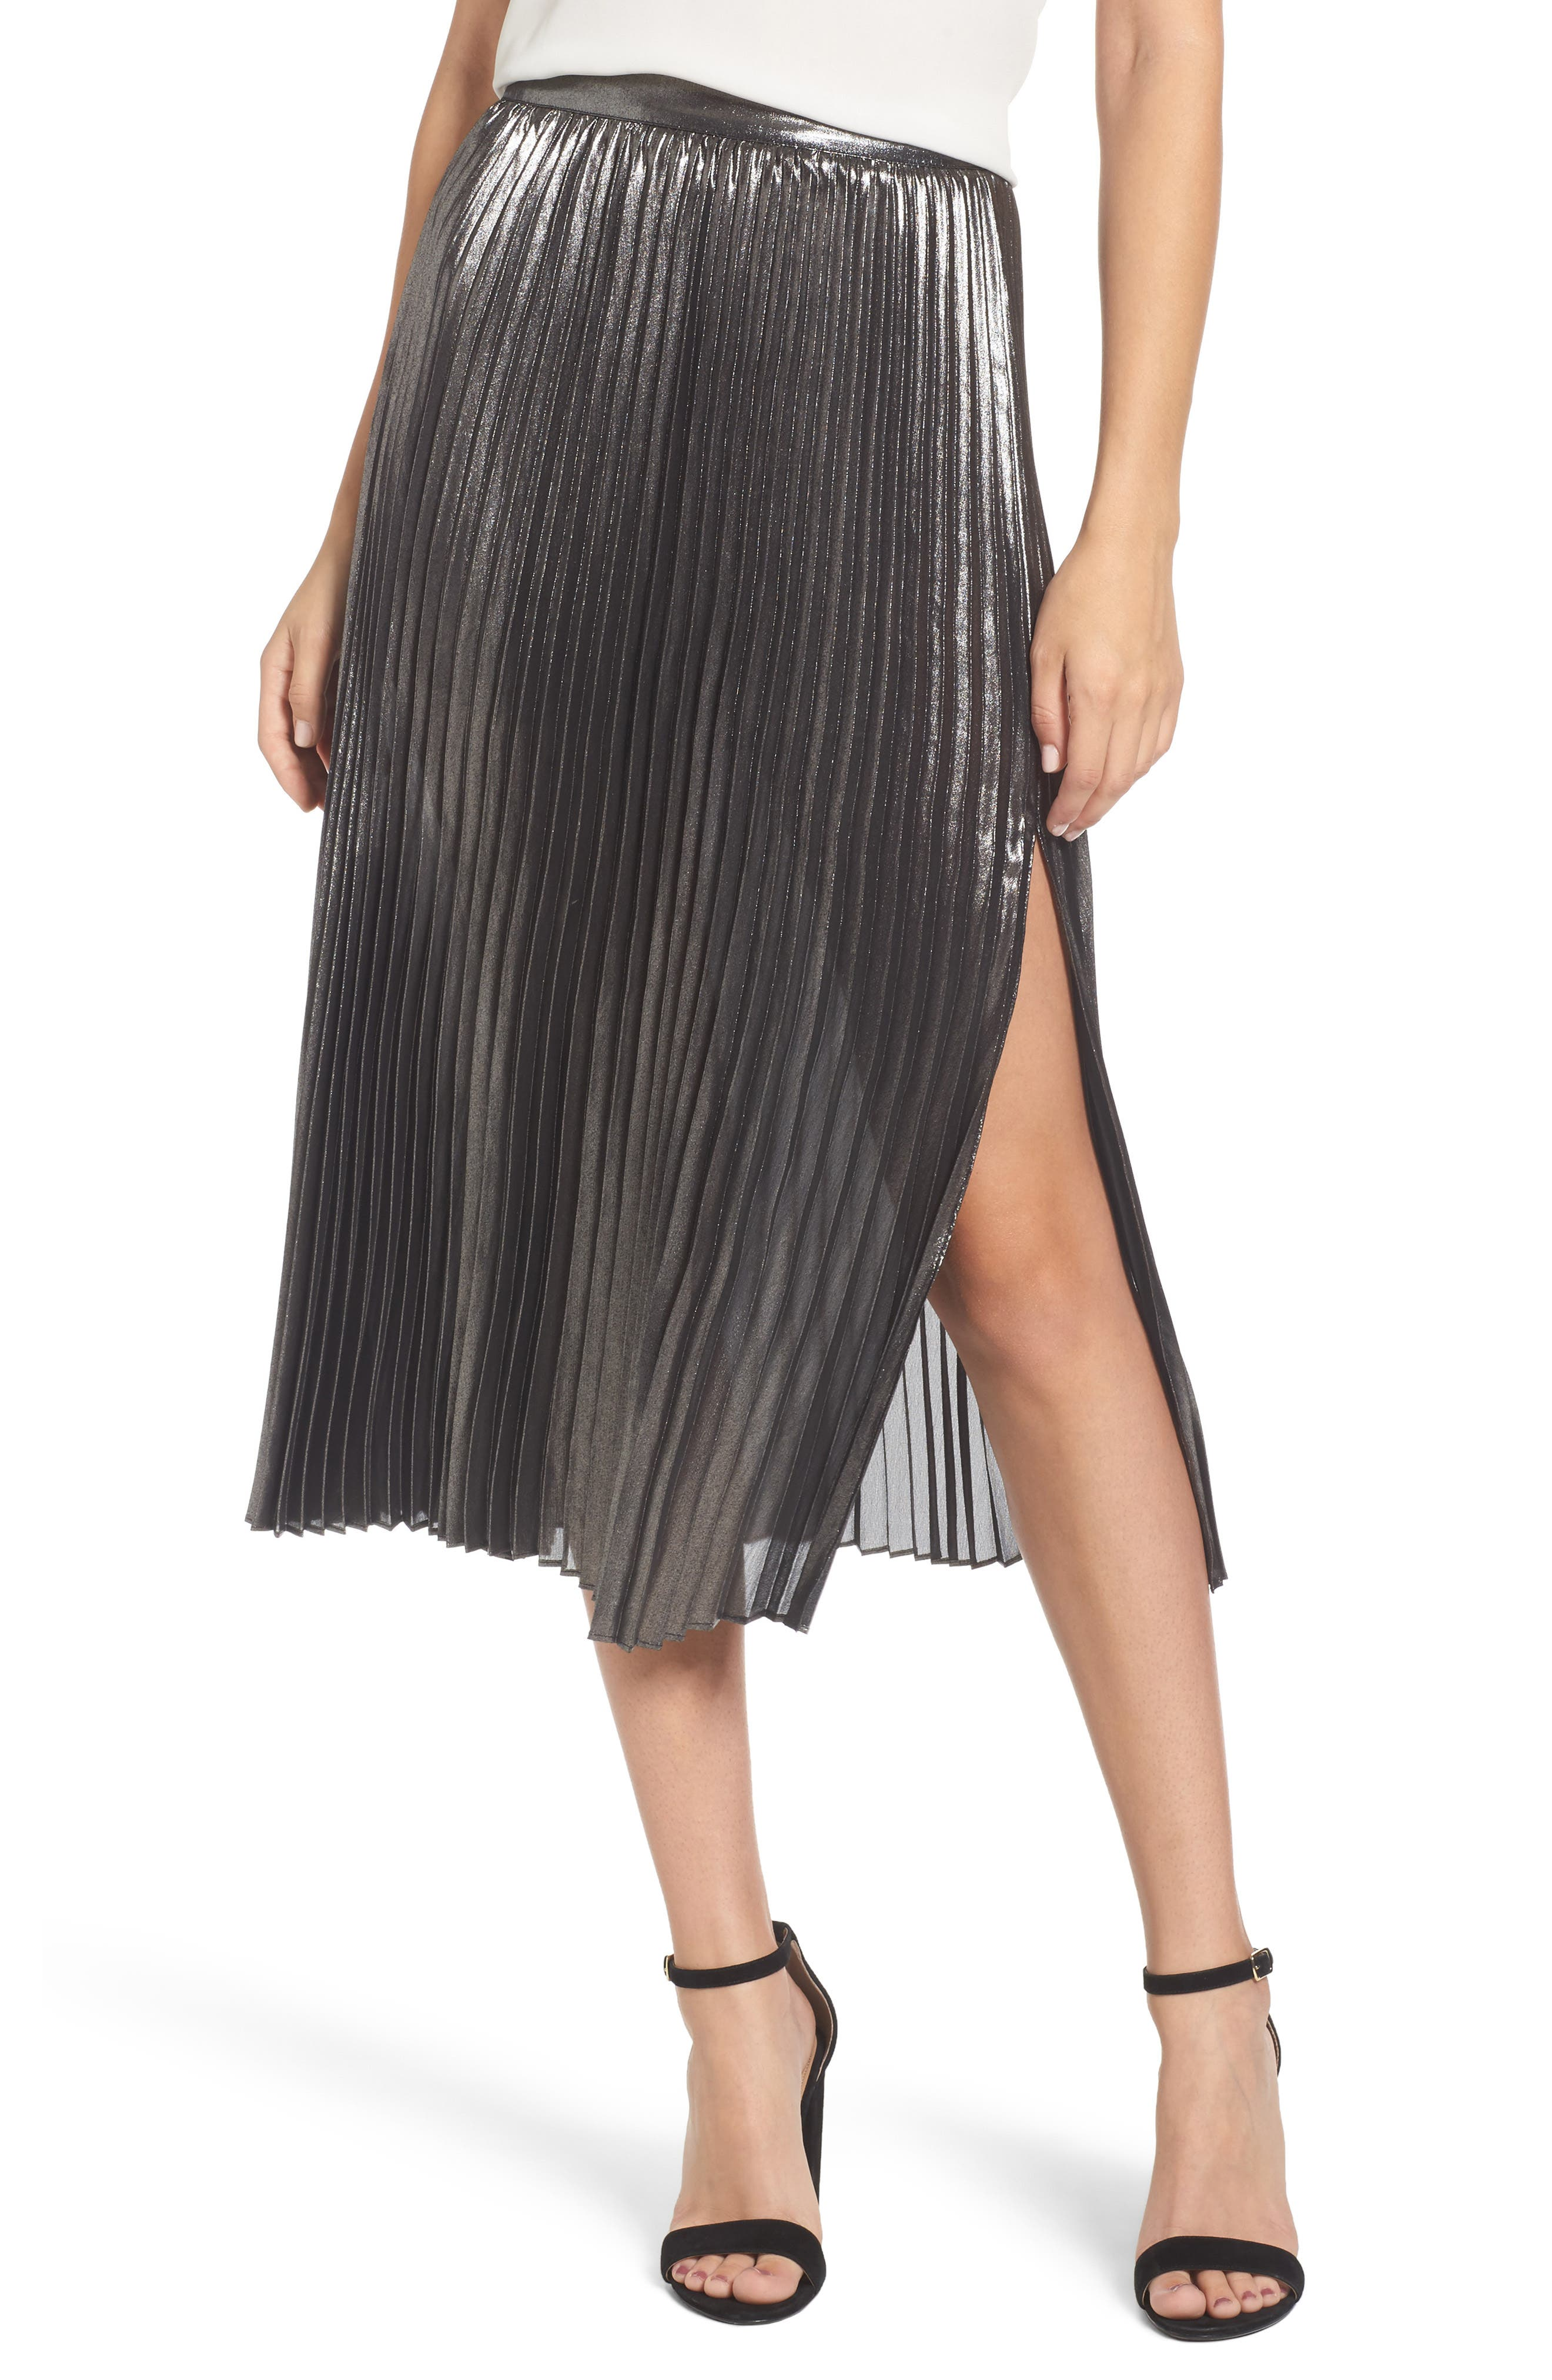 Alternate Image 1 Selected - Trouvé Metallic Pleated Skirt